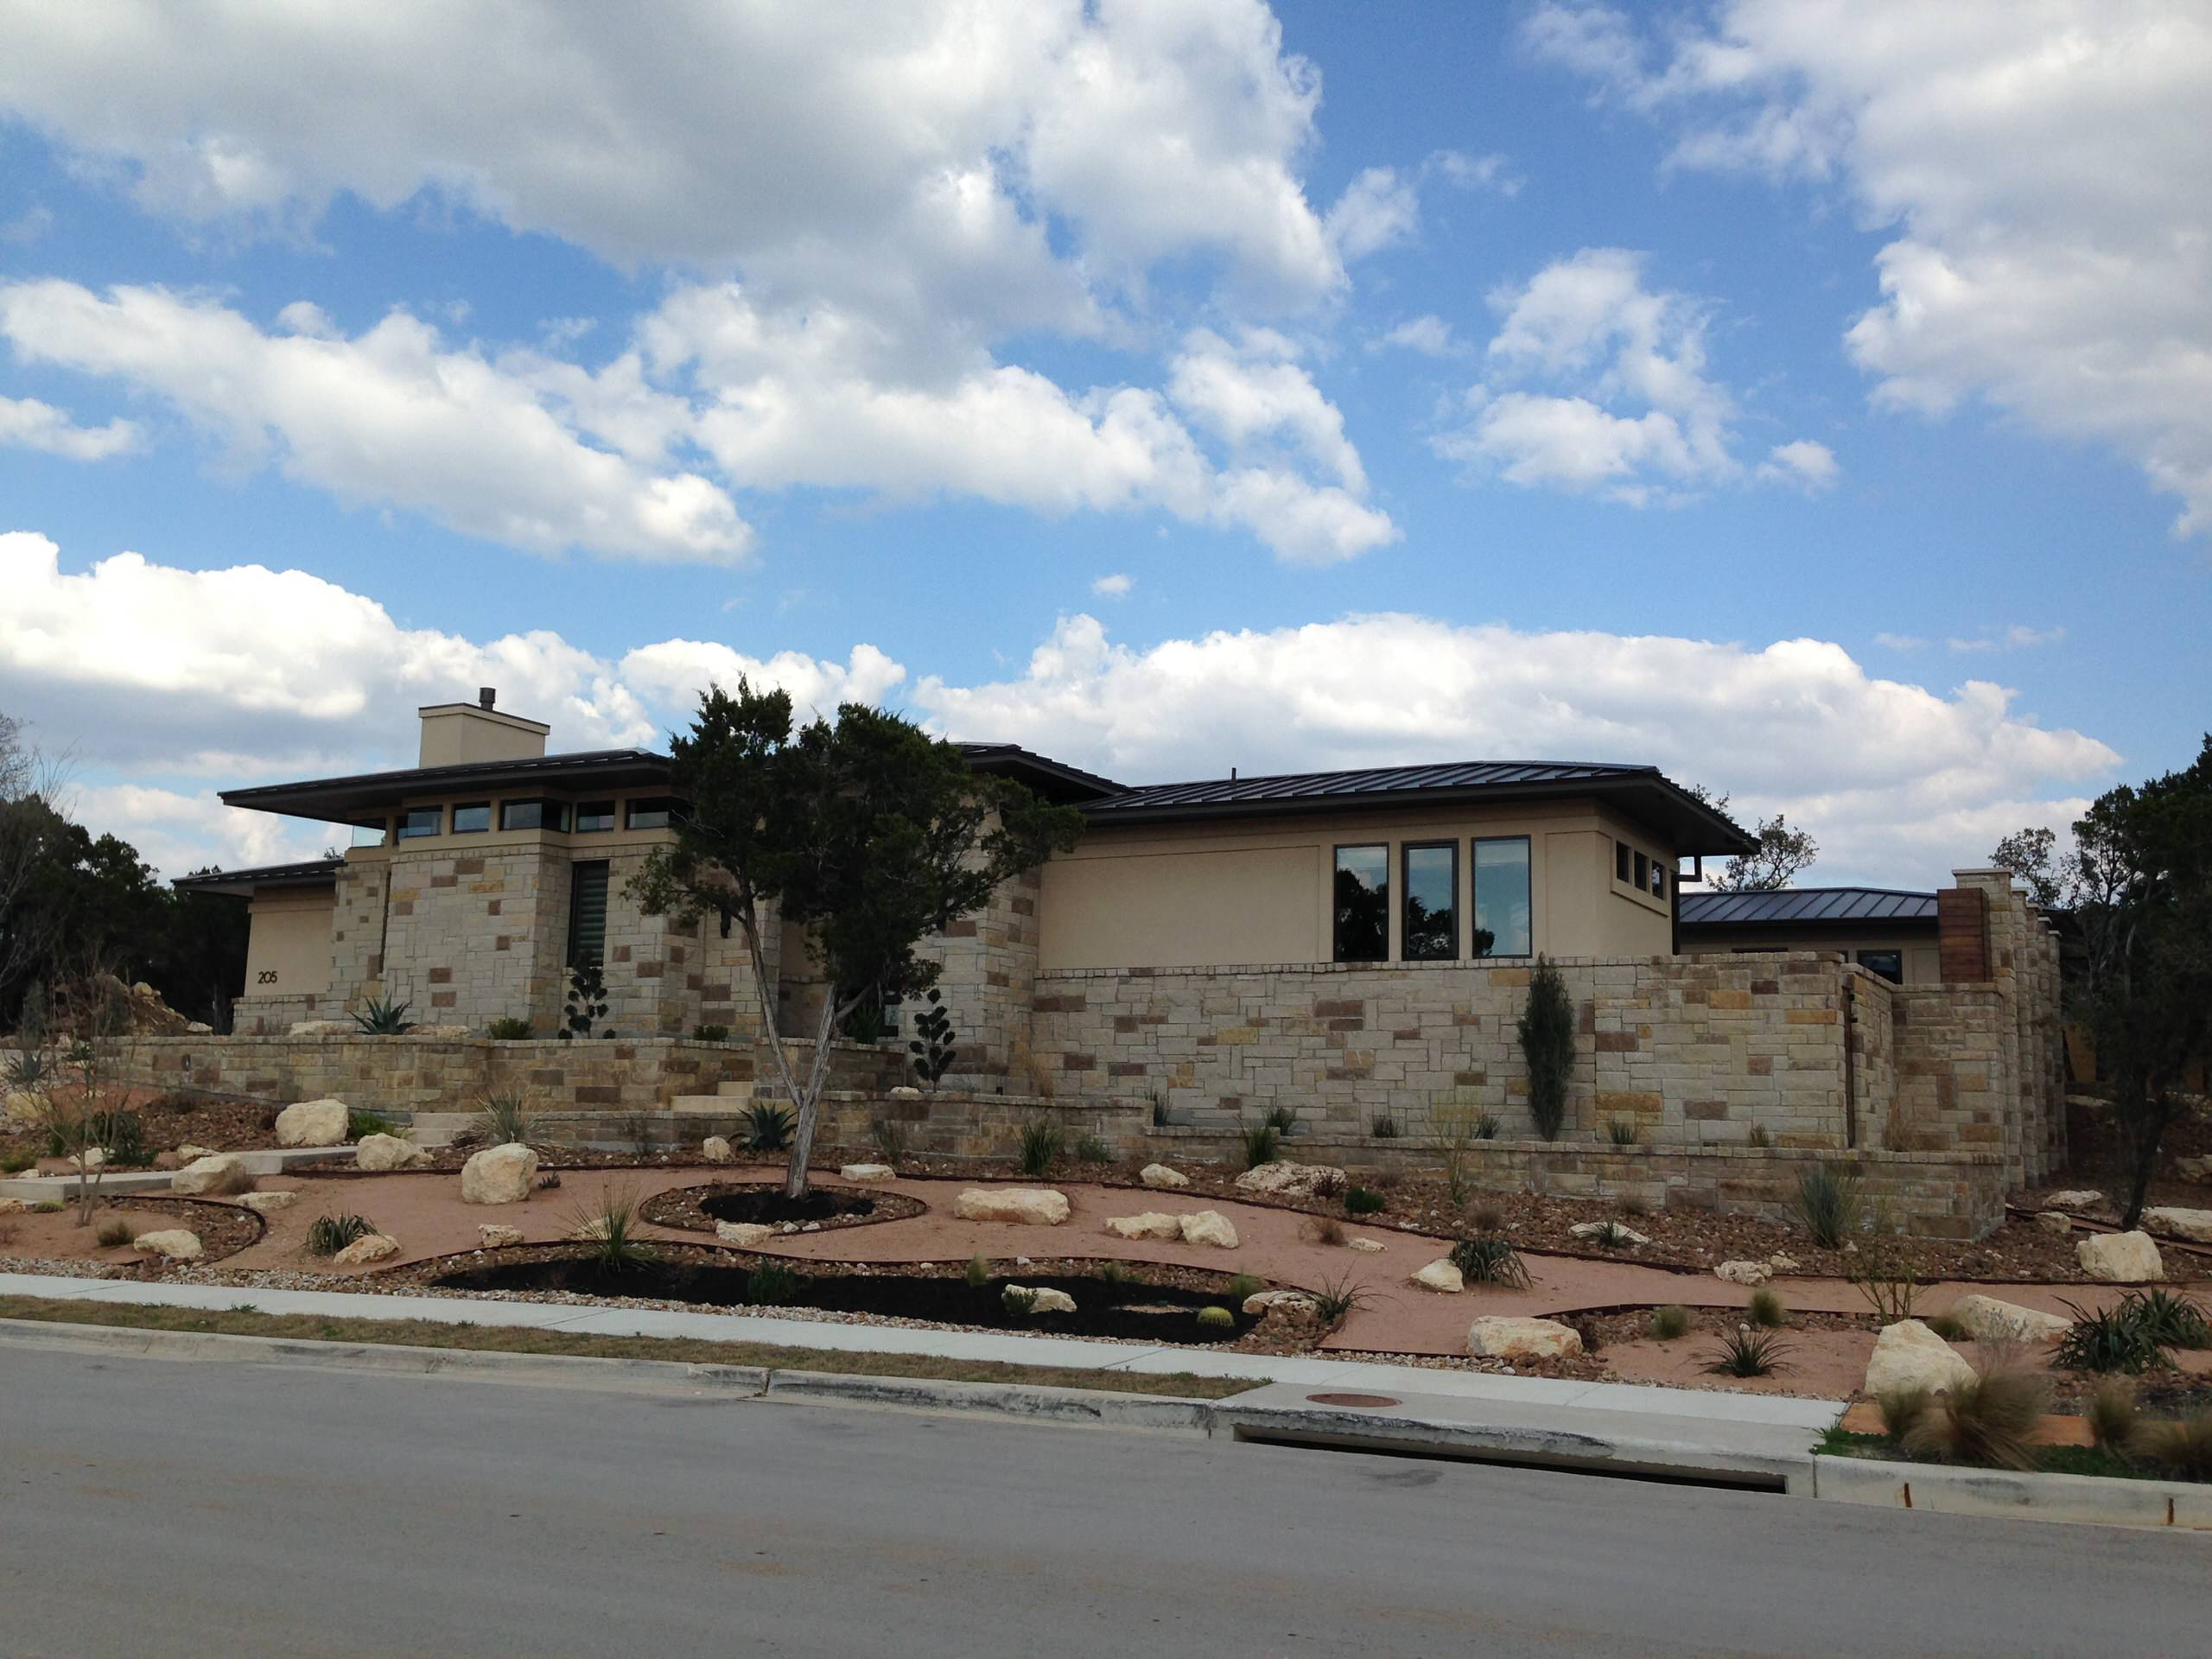 A mix of Hill Country and Prairie architecture